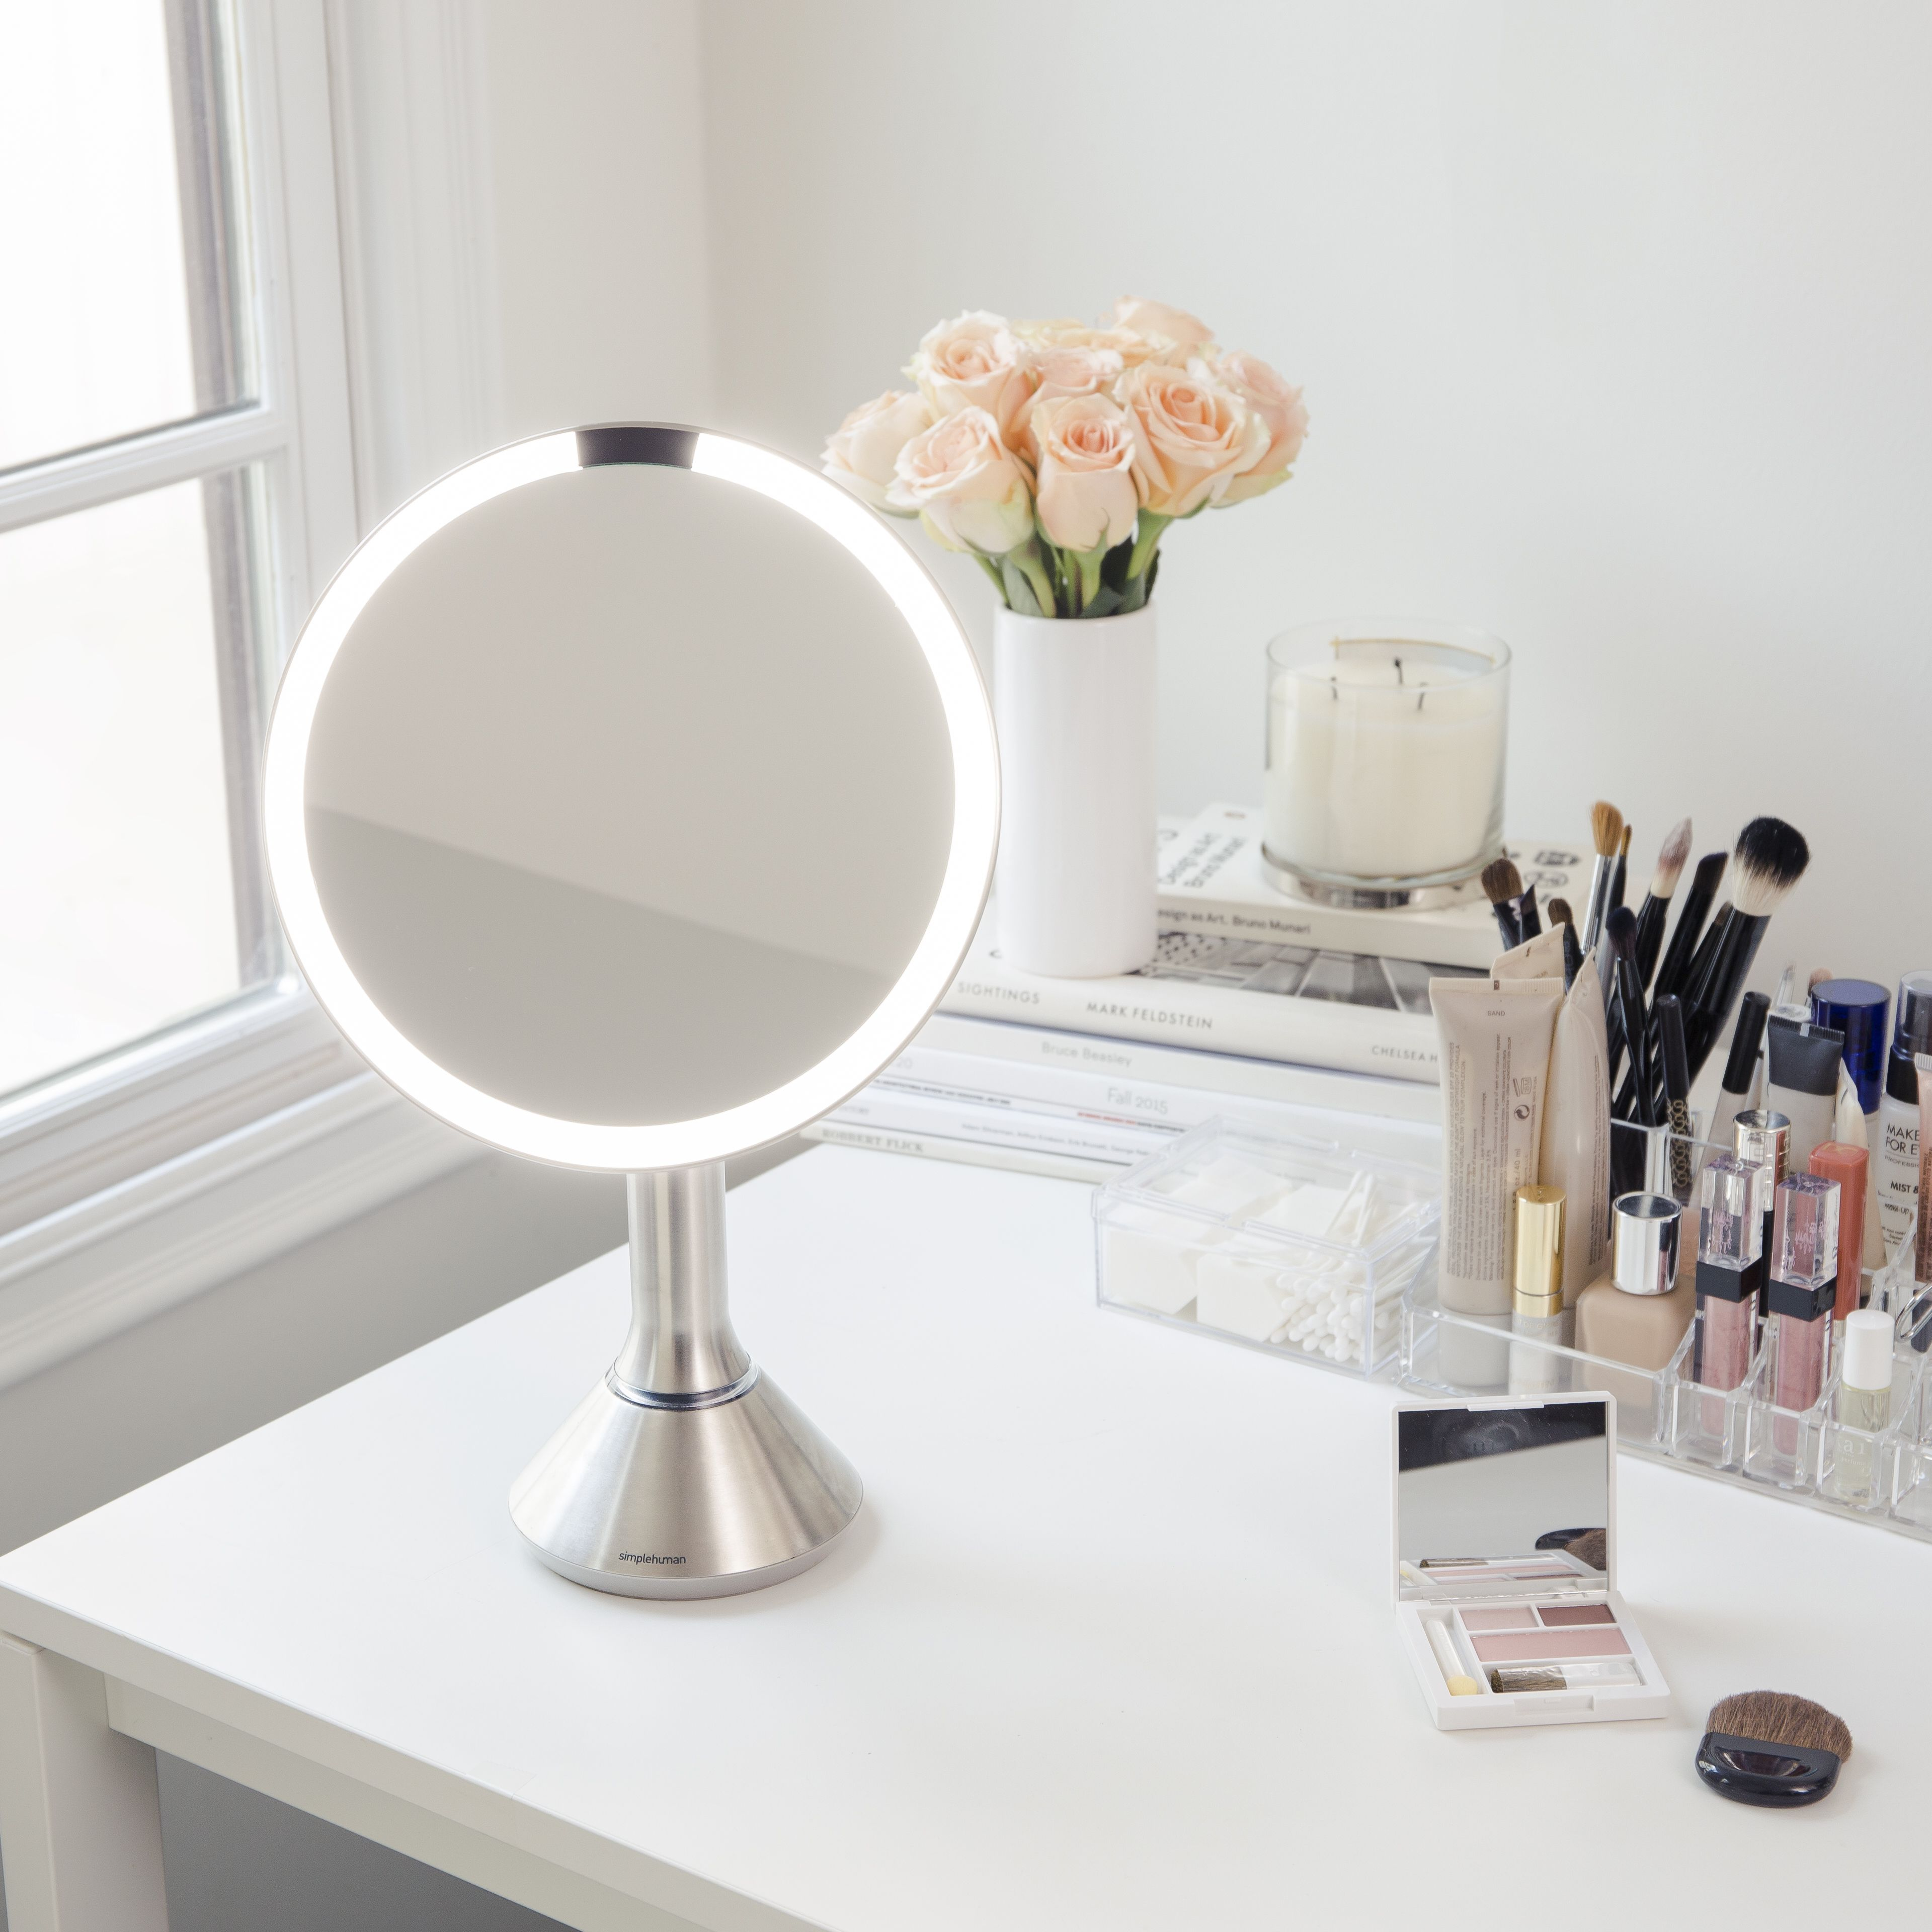 Bright vases trays dishes aroma lamps mirrors in beautiful frames - The Perfect Beauty Routine Requires The Best Light The Sensor Mirror S Tru Lux Light System Simulates Natural Sunlight For A Brighter More Color Correct